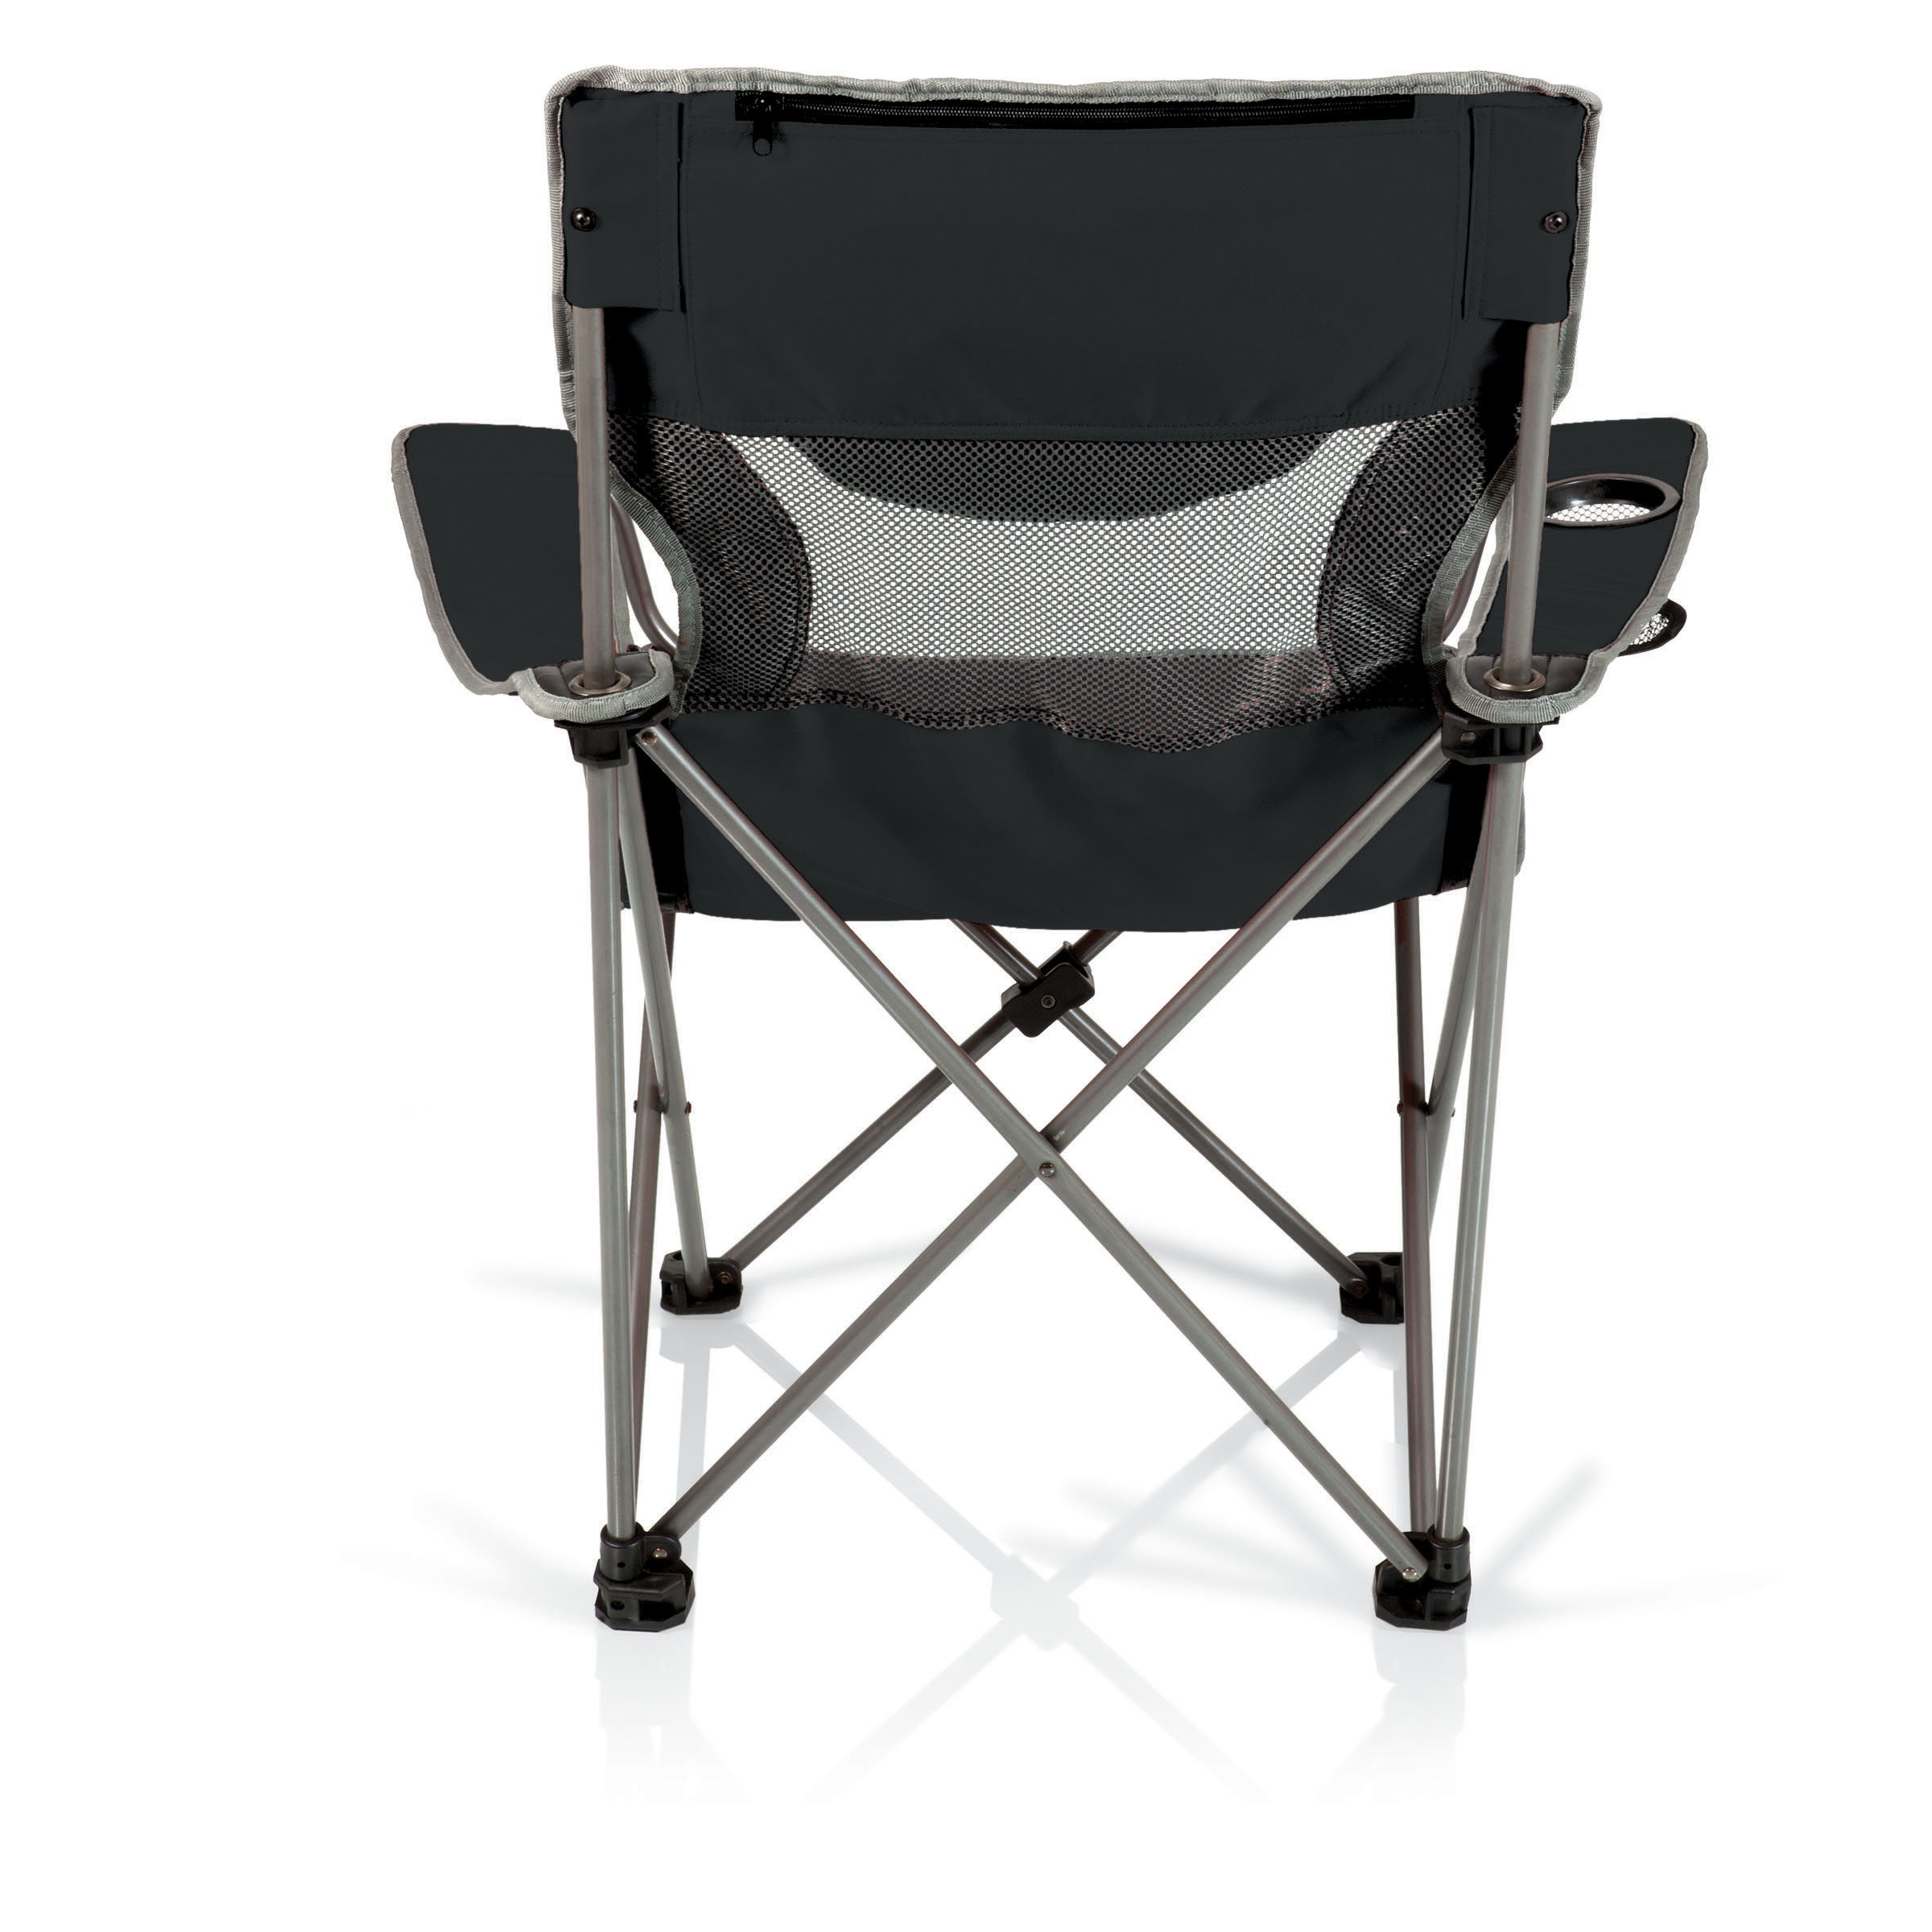 Picnic Time Campsite Folding Camp Chair Black Grey